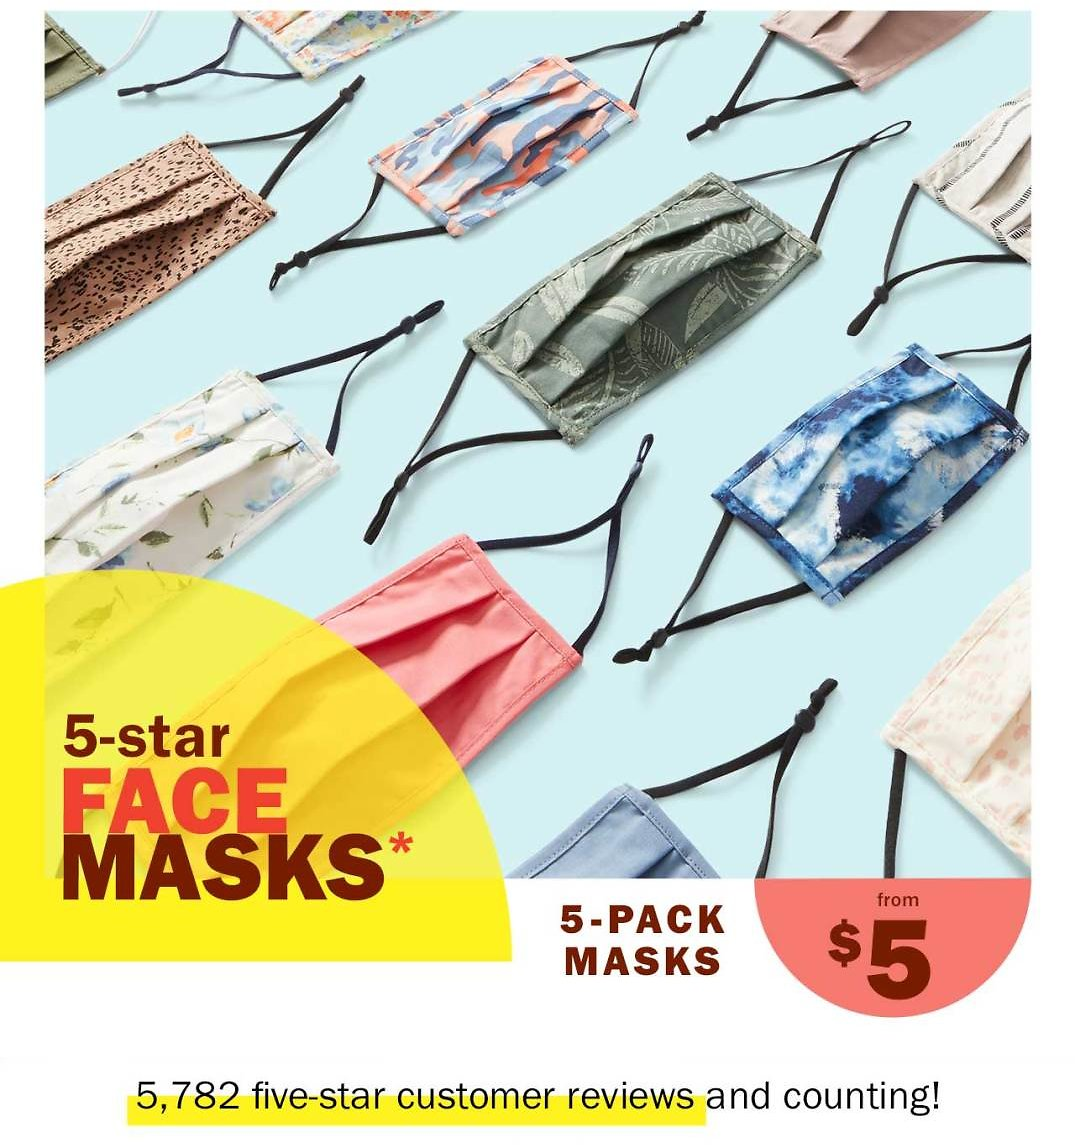 5-Pack Face Masks From $5.00 - Old Navy